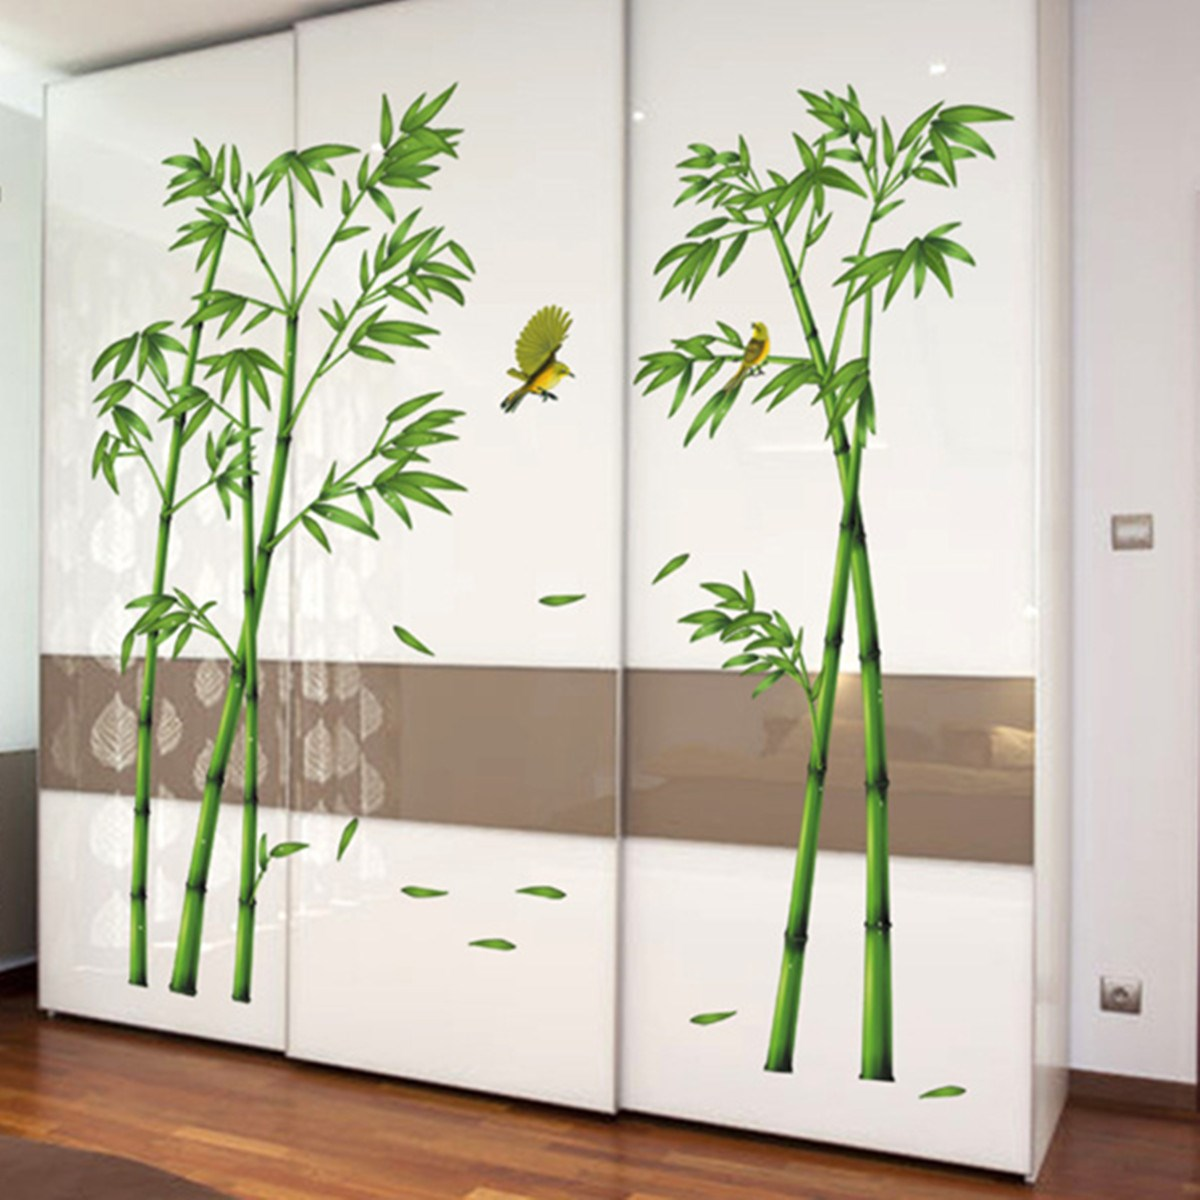 2Pcs 3D Wall stickers Large Size Bamboo Birds Tree DIY Vinyl Removable  Decals Home Living Room